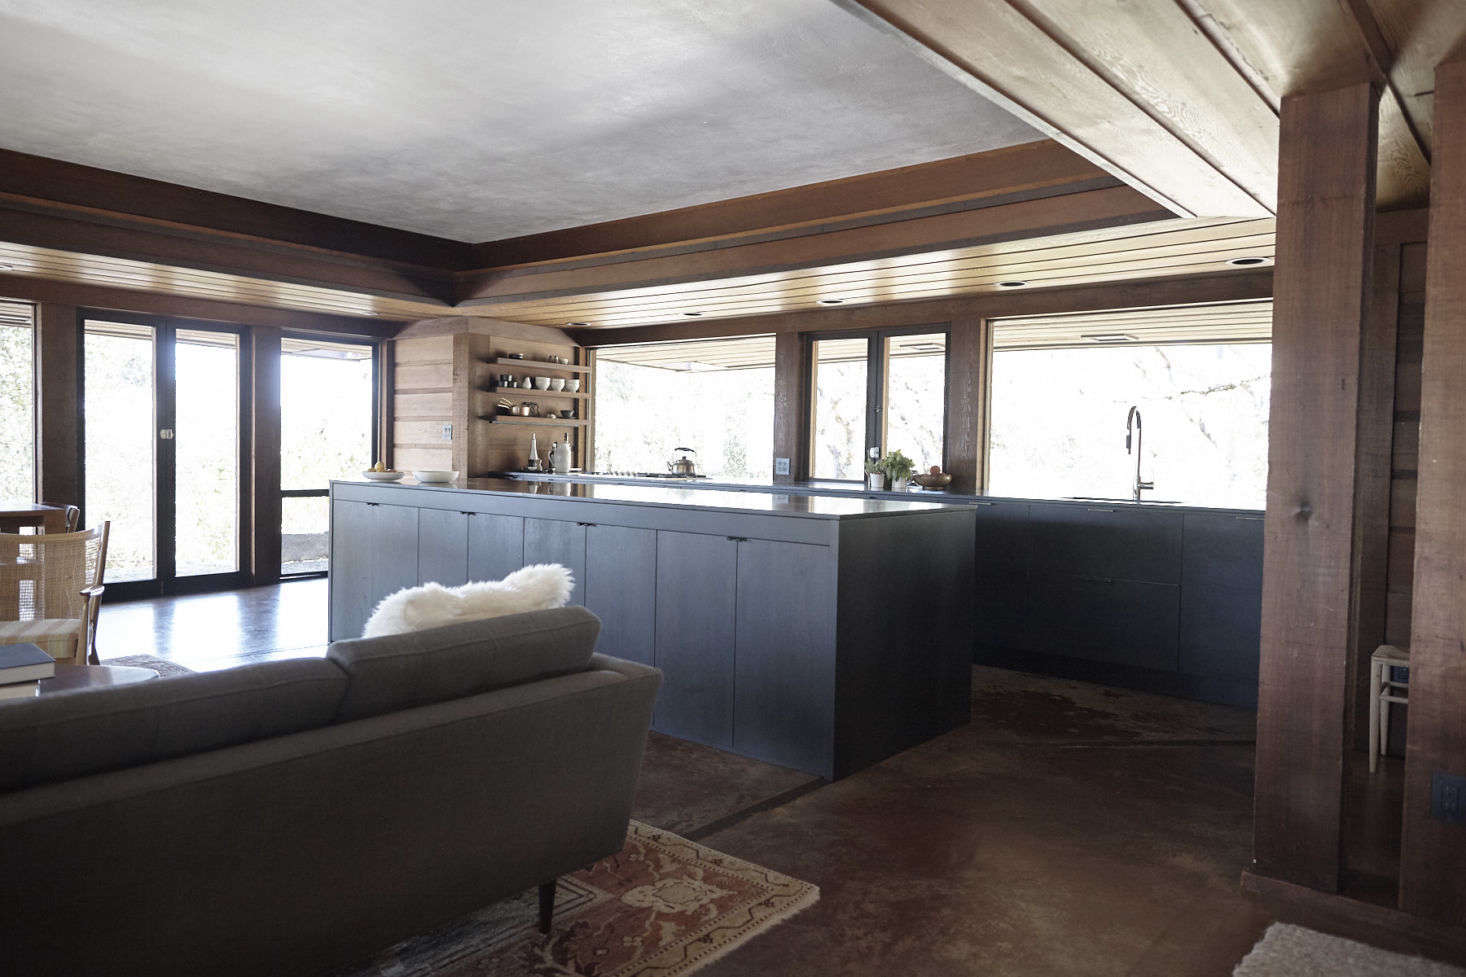 A view of the open-plan living space toward the new kitchen.